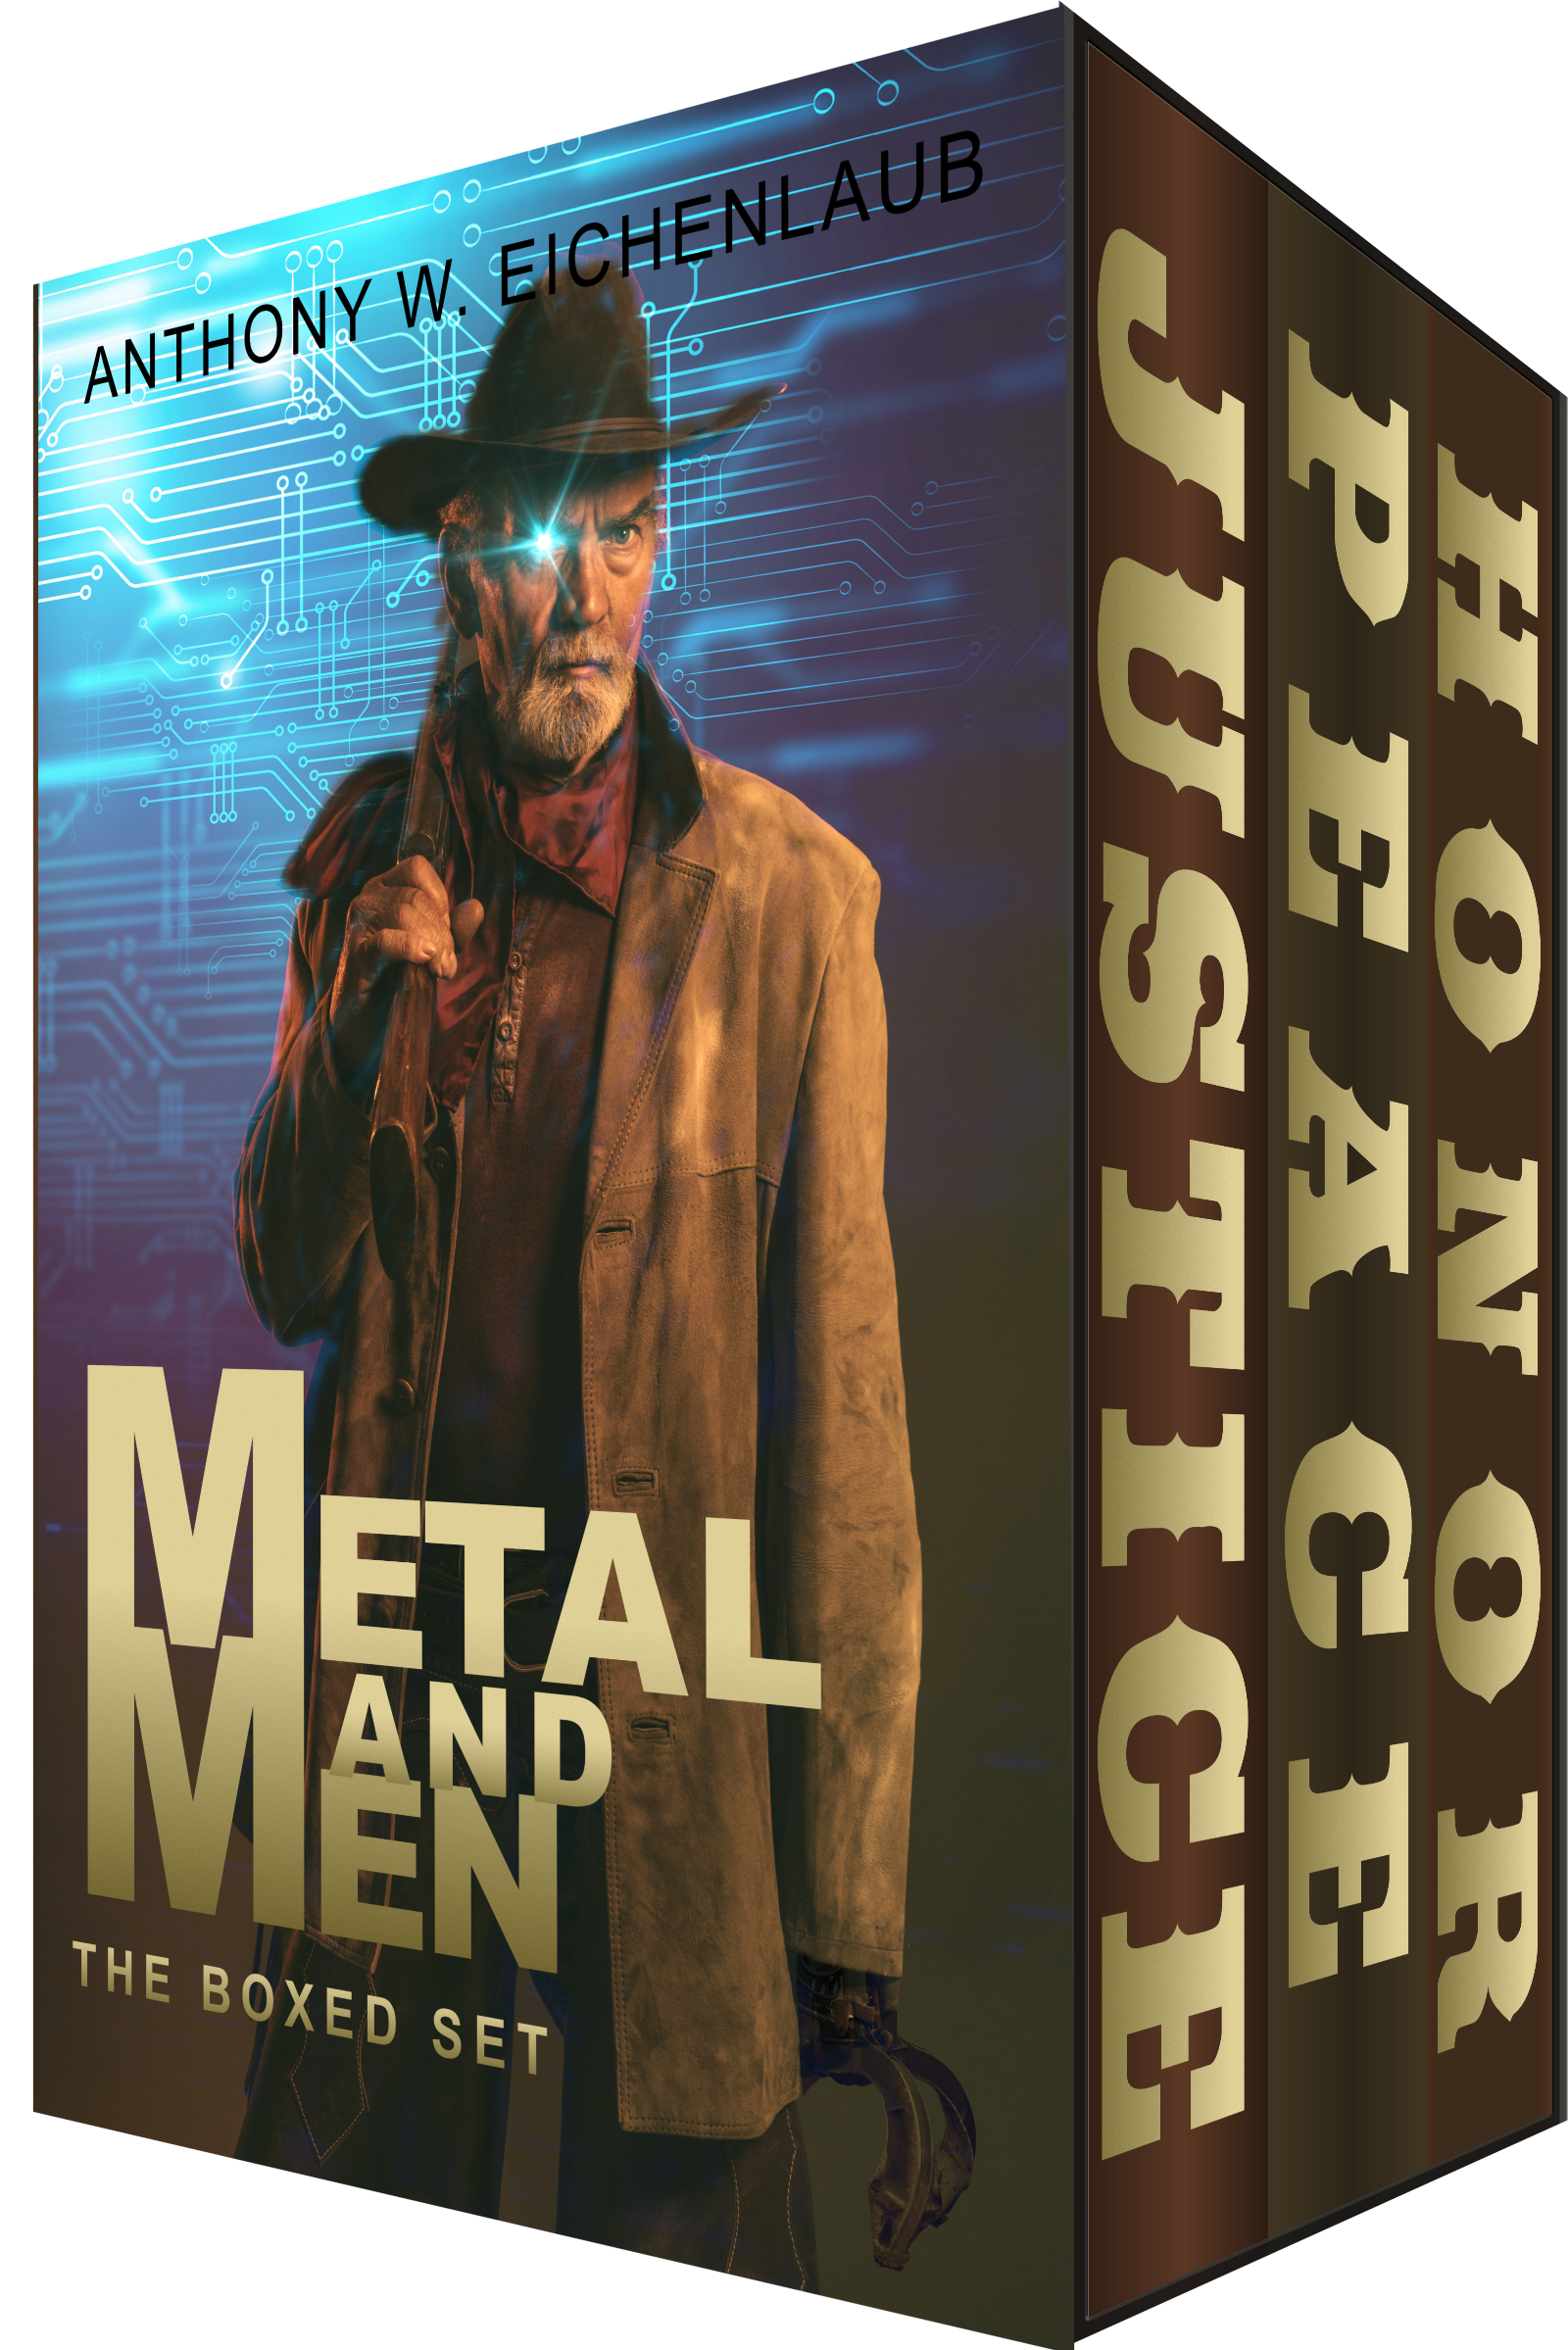 A book box with cowboy on the front